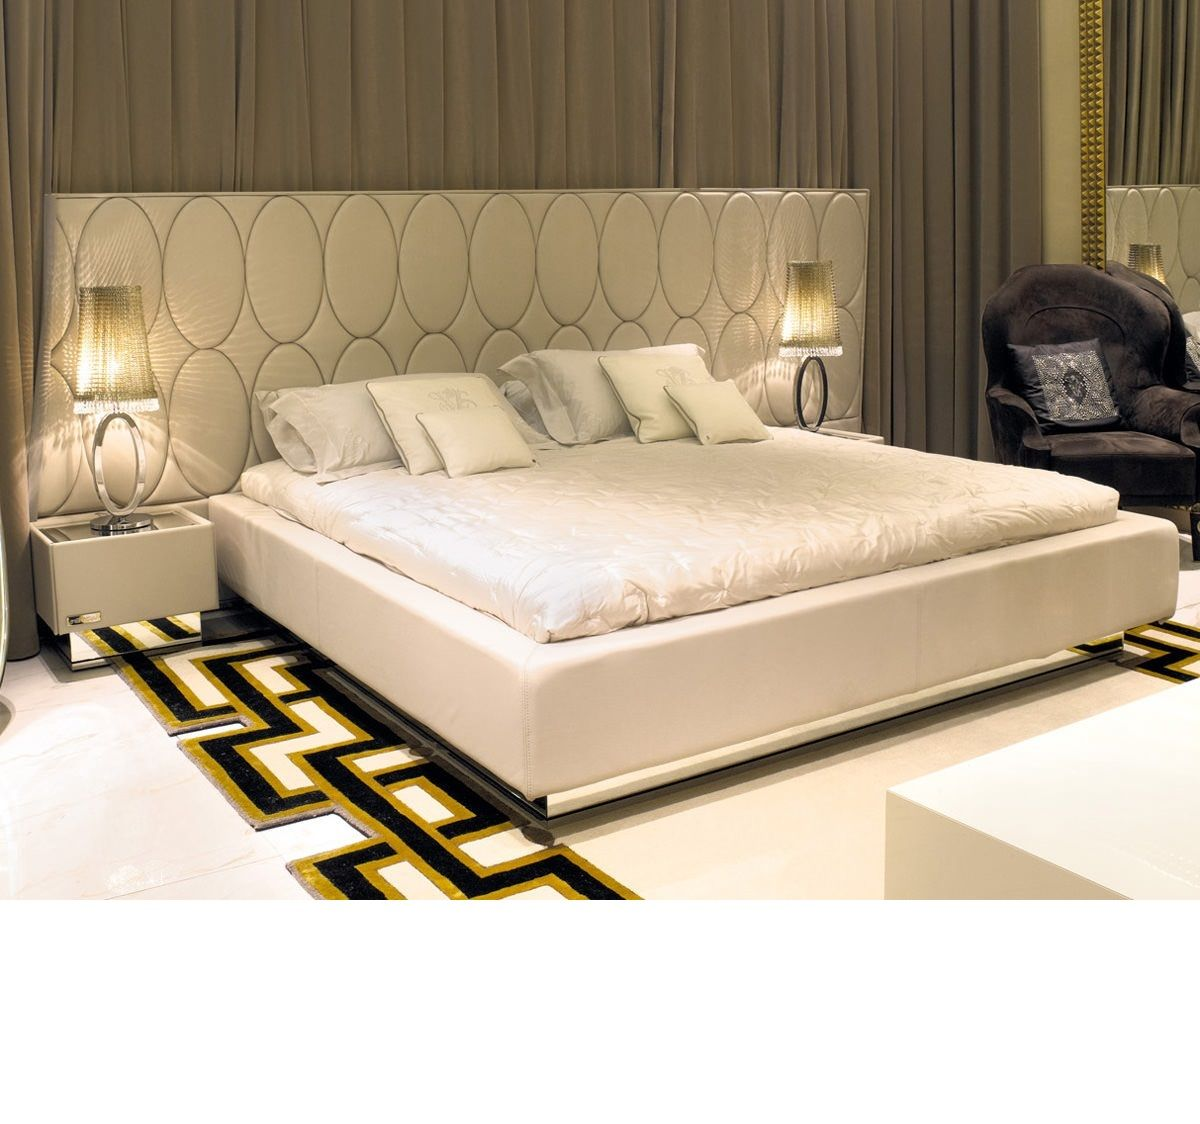 luxury bedrooms\